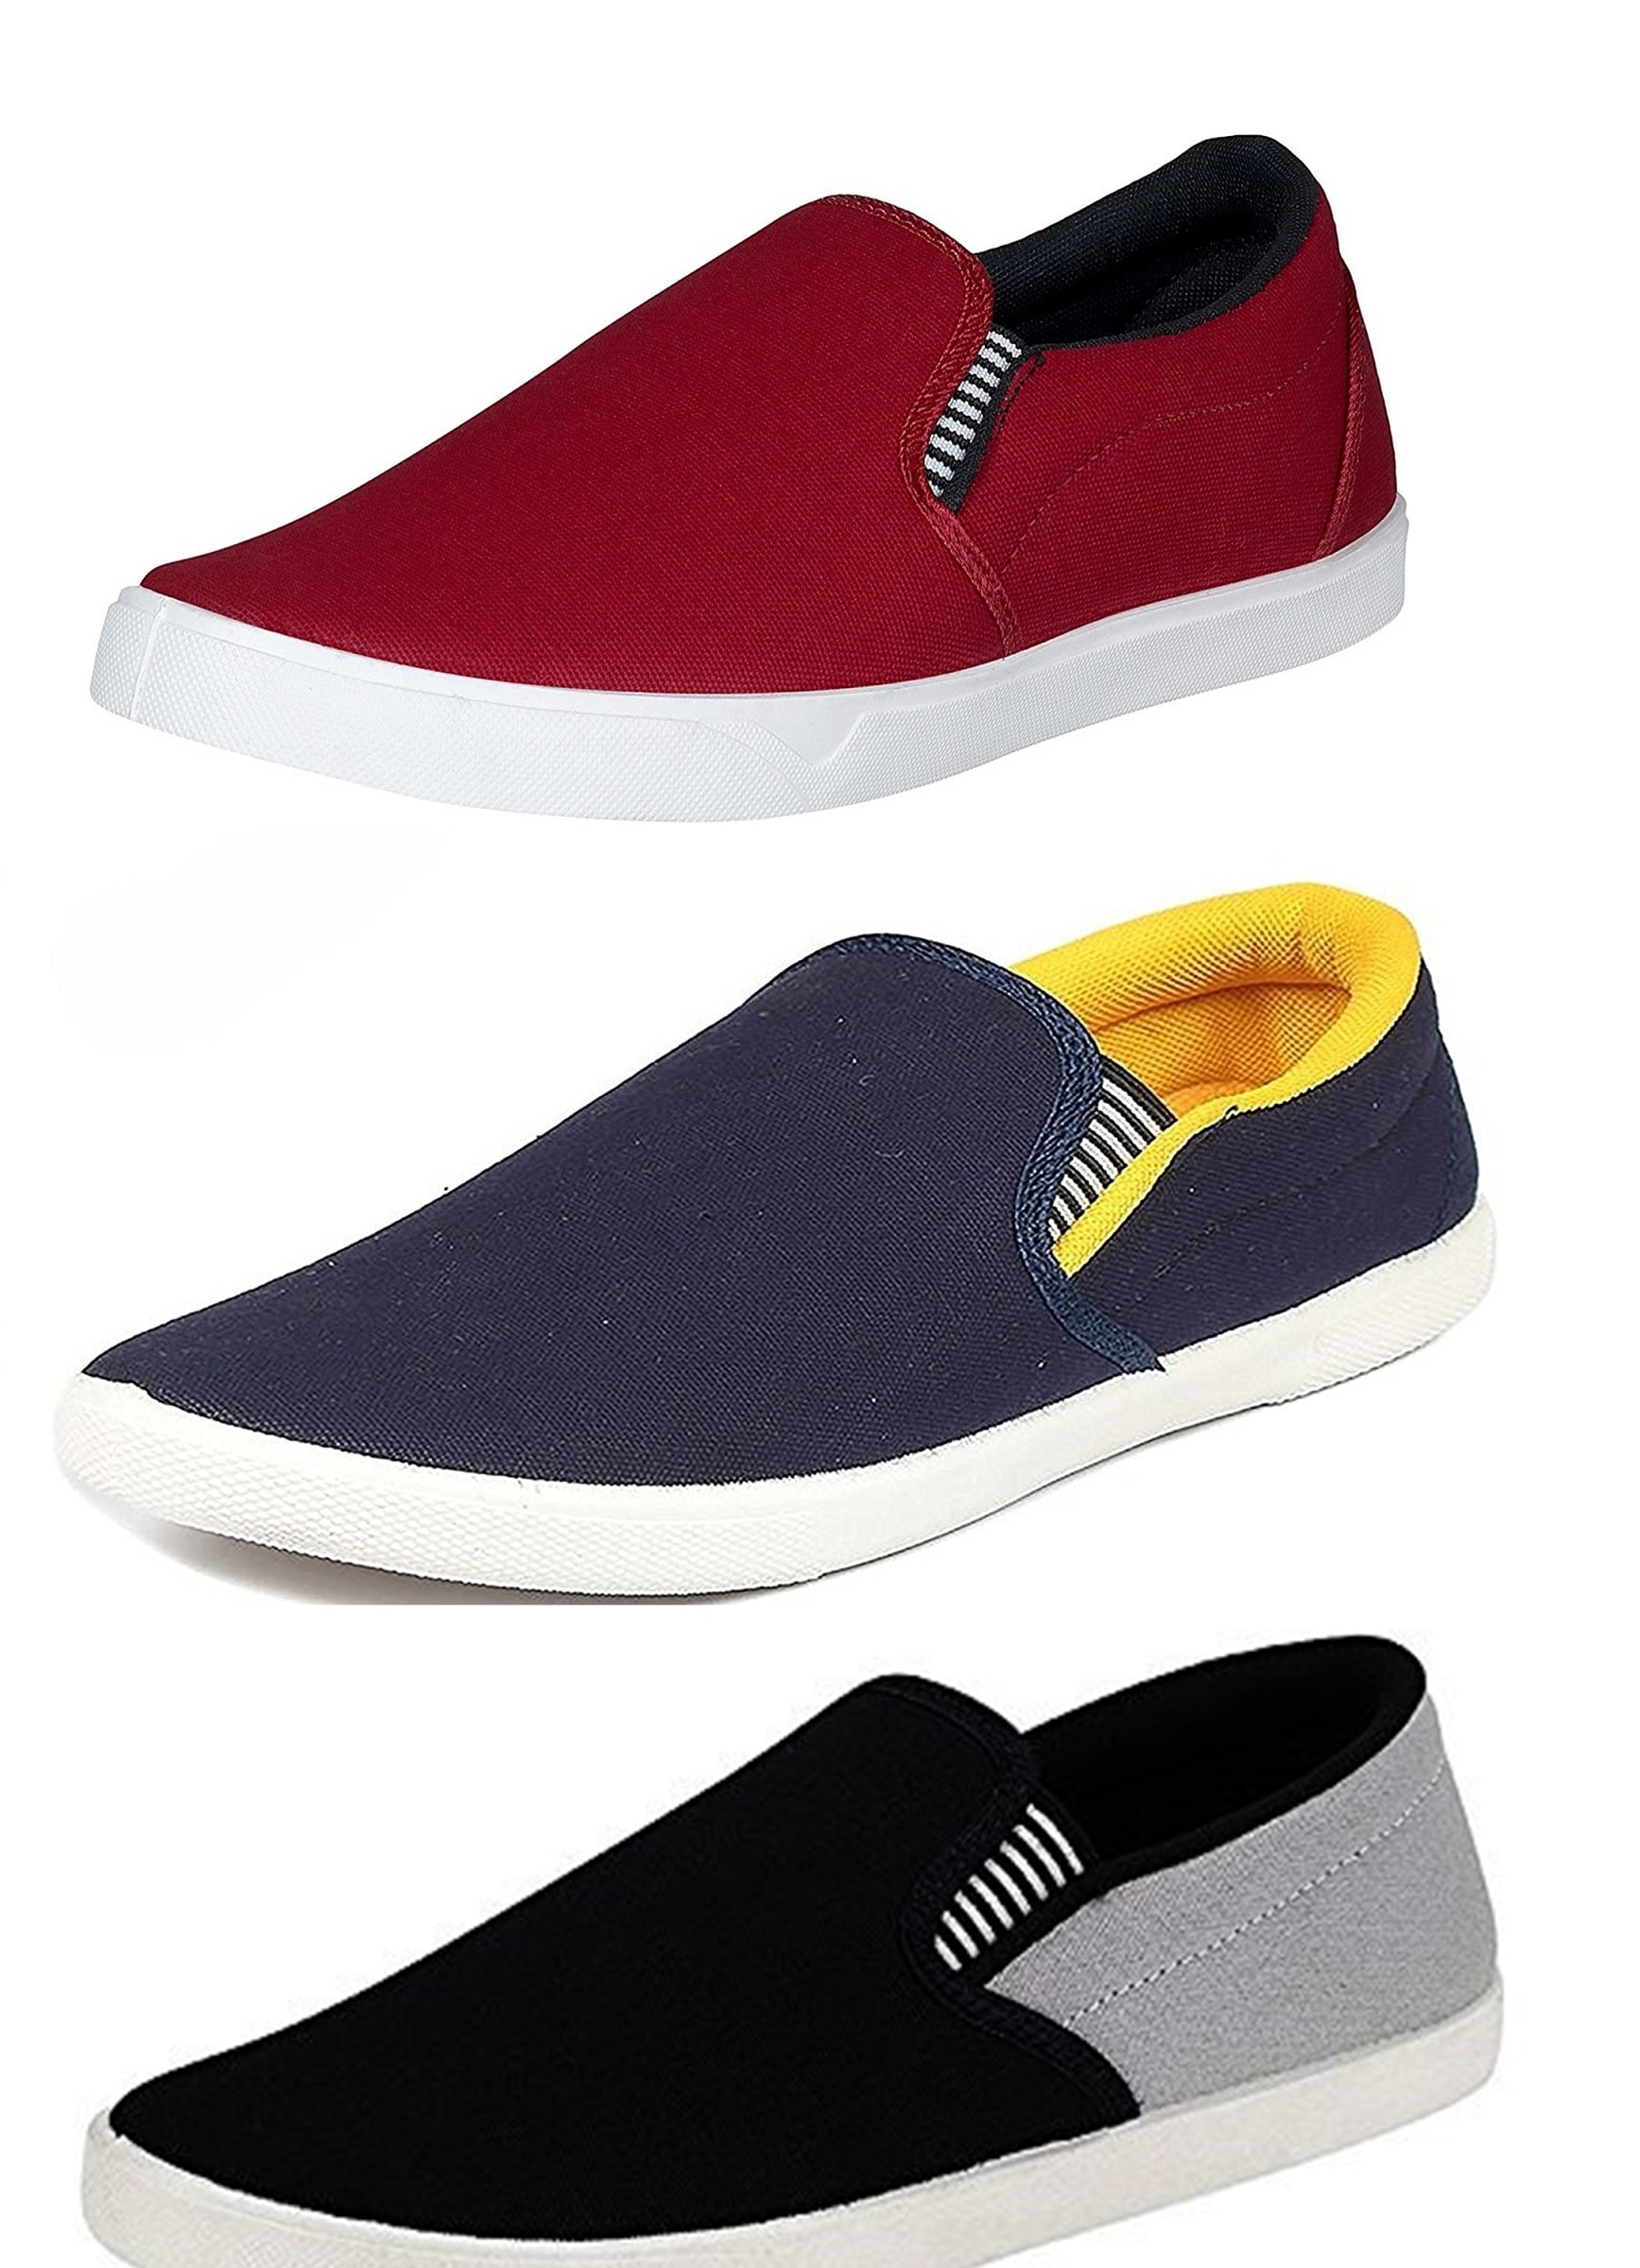 32e690b3a32 Buy BERLOC Men Multi-color Casual Shoes Online at Low Prices in ...